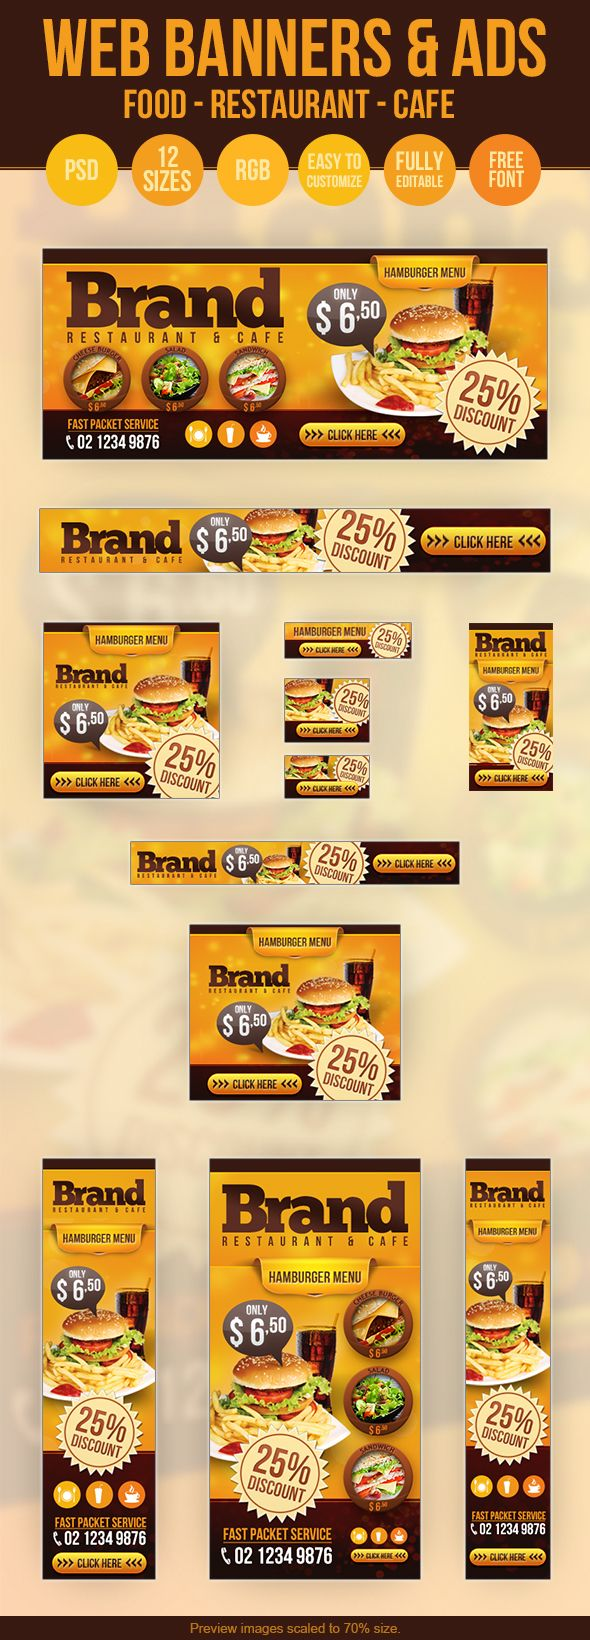 Web Banners  Ads - Restaurant - Cafe - Food by Hüseyin Kayacı, via Behance